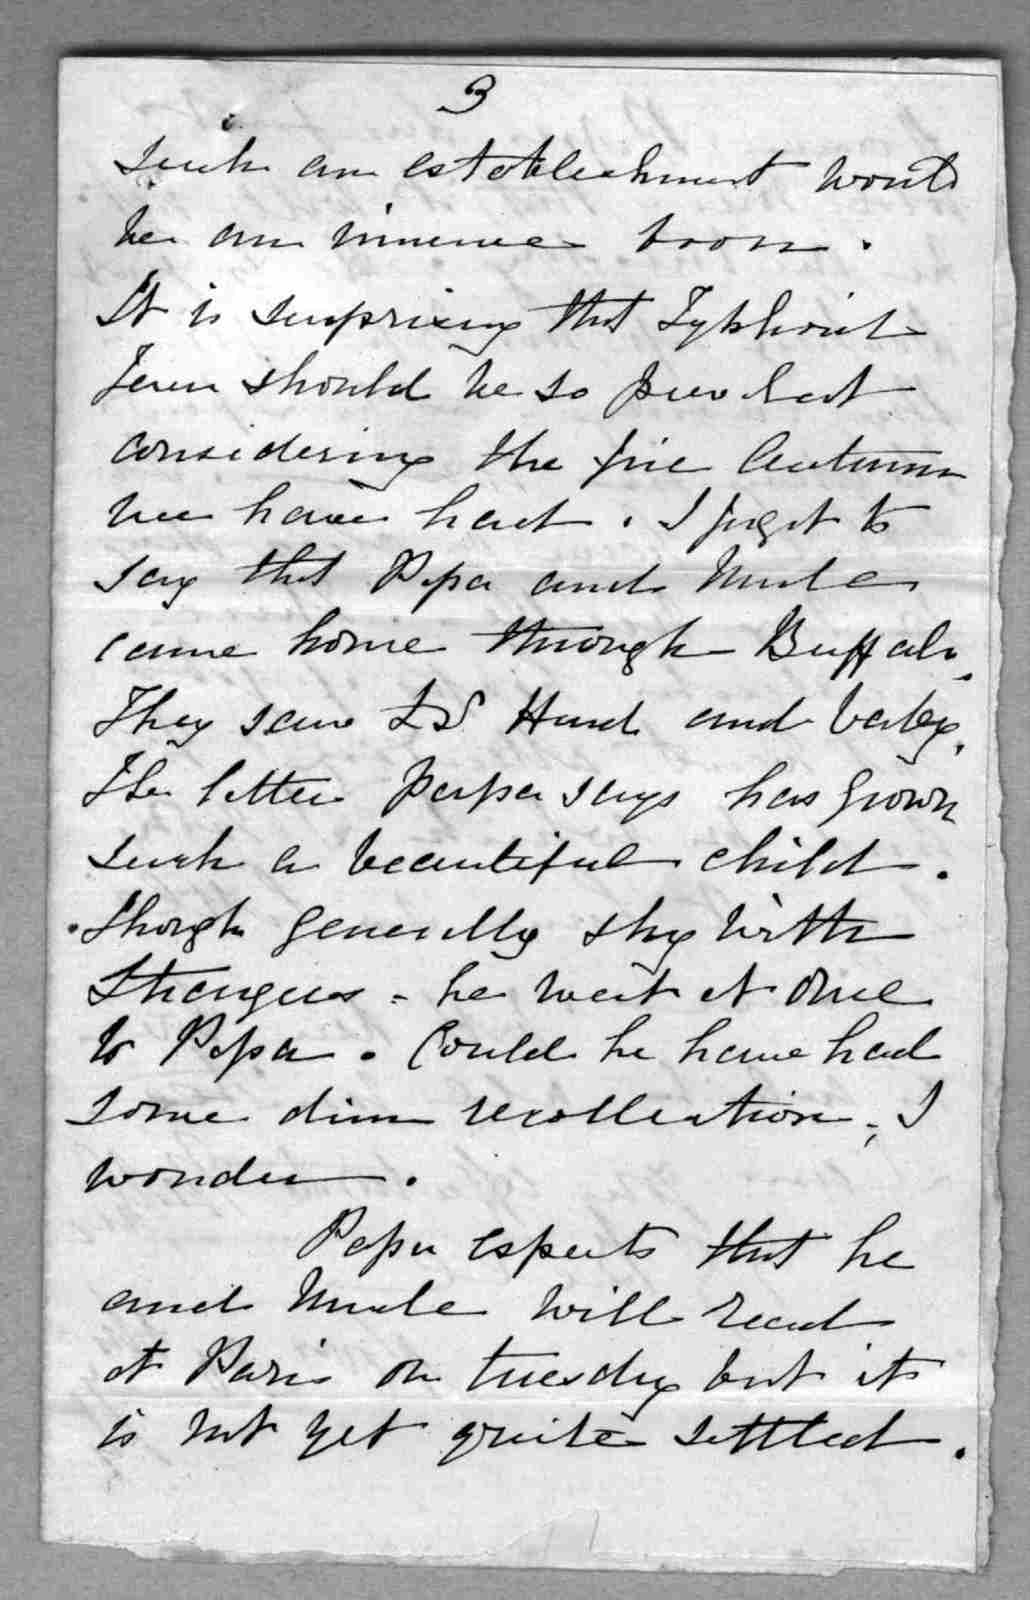 Letter from Eliza Symonds Bell to Alexander Graham Bell, undated